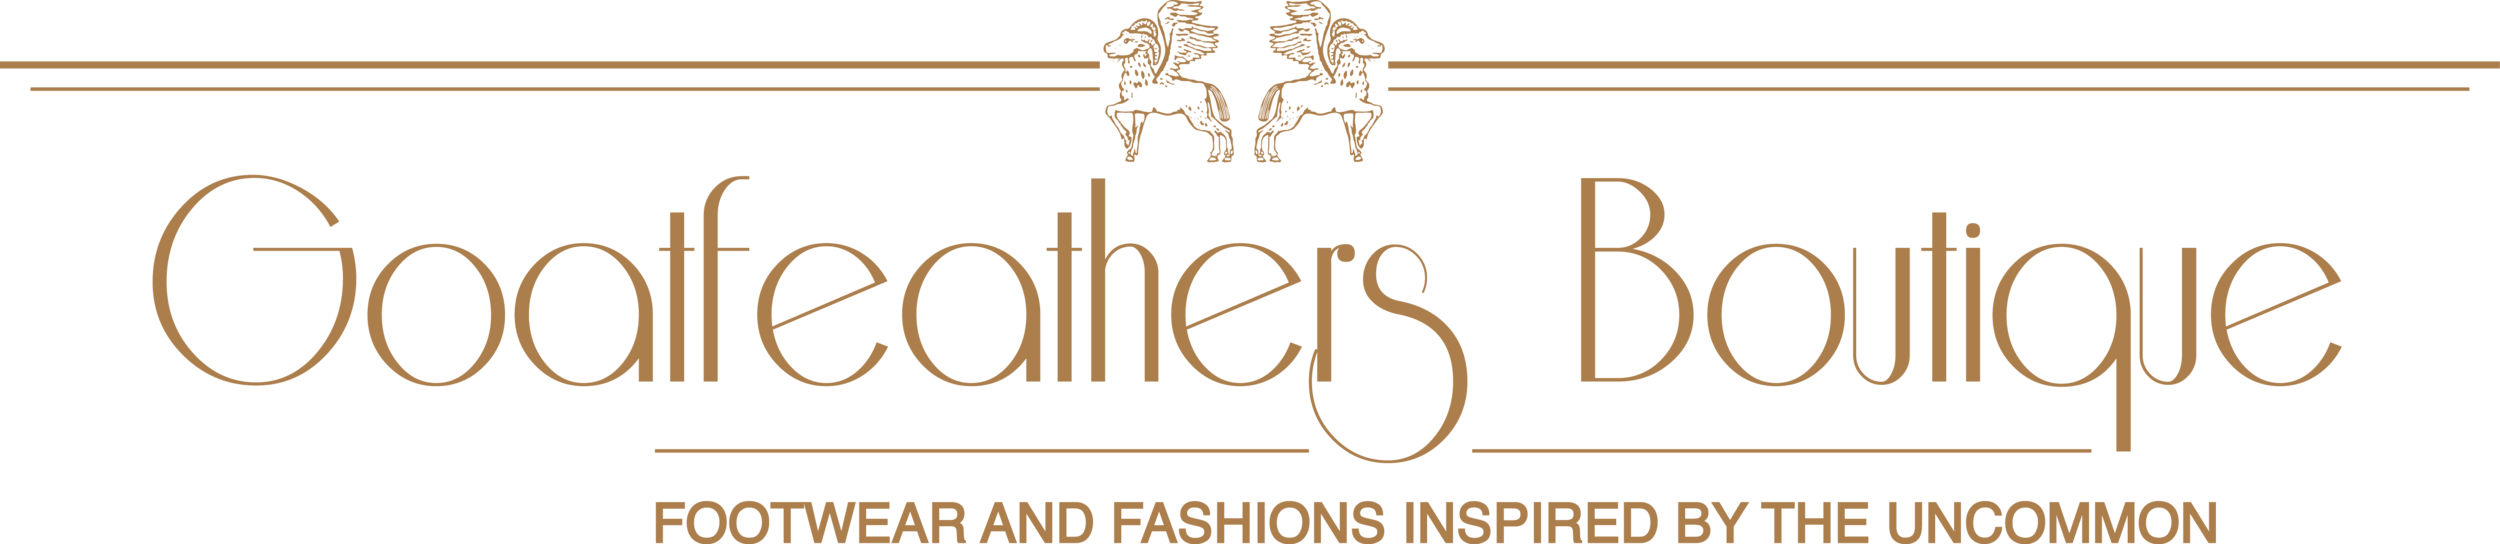 Goatfeathers Boutique